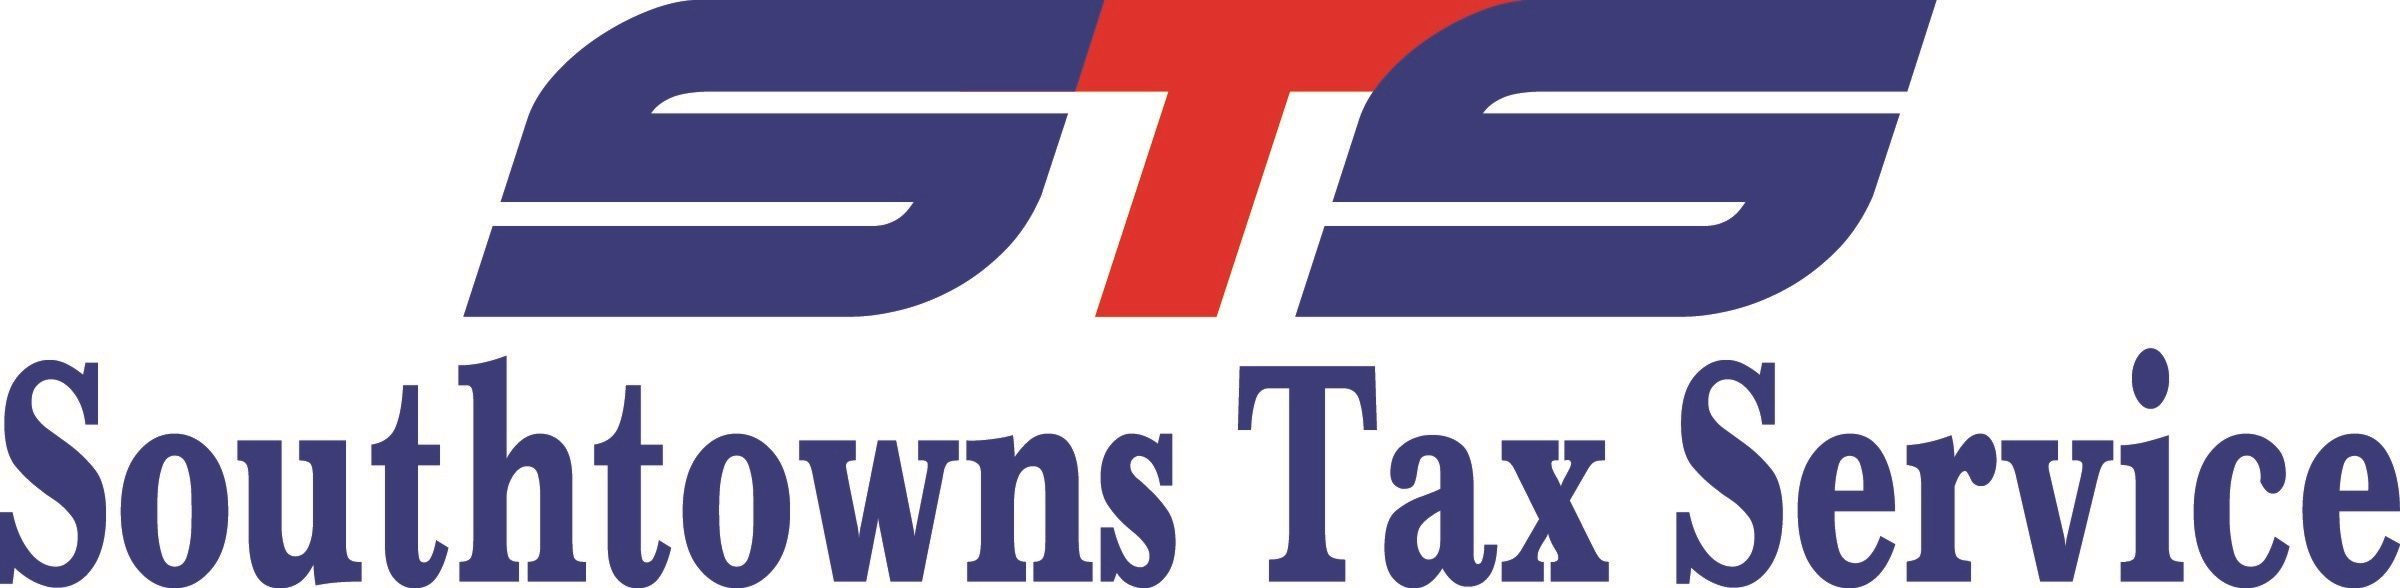 Southtowns Tax Service